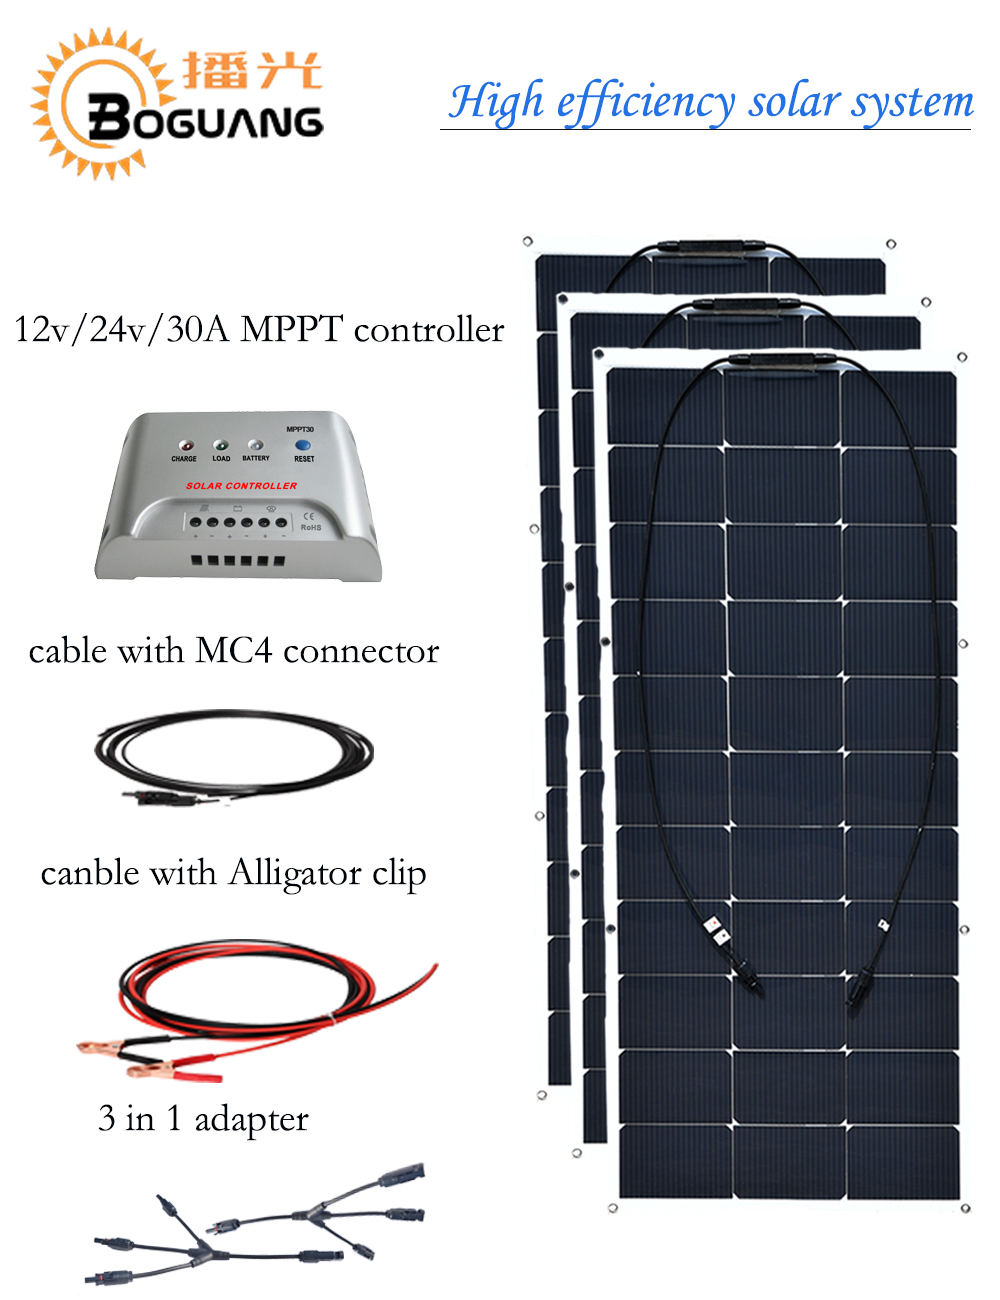 Boguang 300w semi flexible solar panel 30A MPPT controller cable Alligator clip cell 3 in 1 adapter MC4 connector 12v 24v 3*100w sunpower flexible solar panel 12v 100w monocrystalline semi flexible solar panel 100w solar cell 21